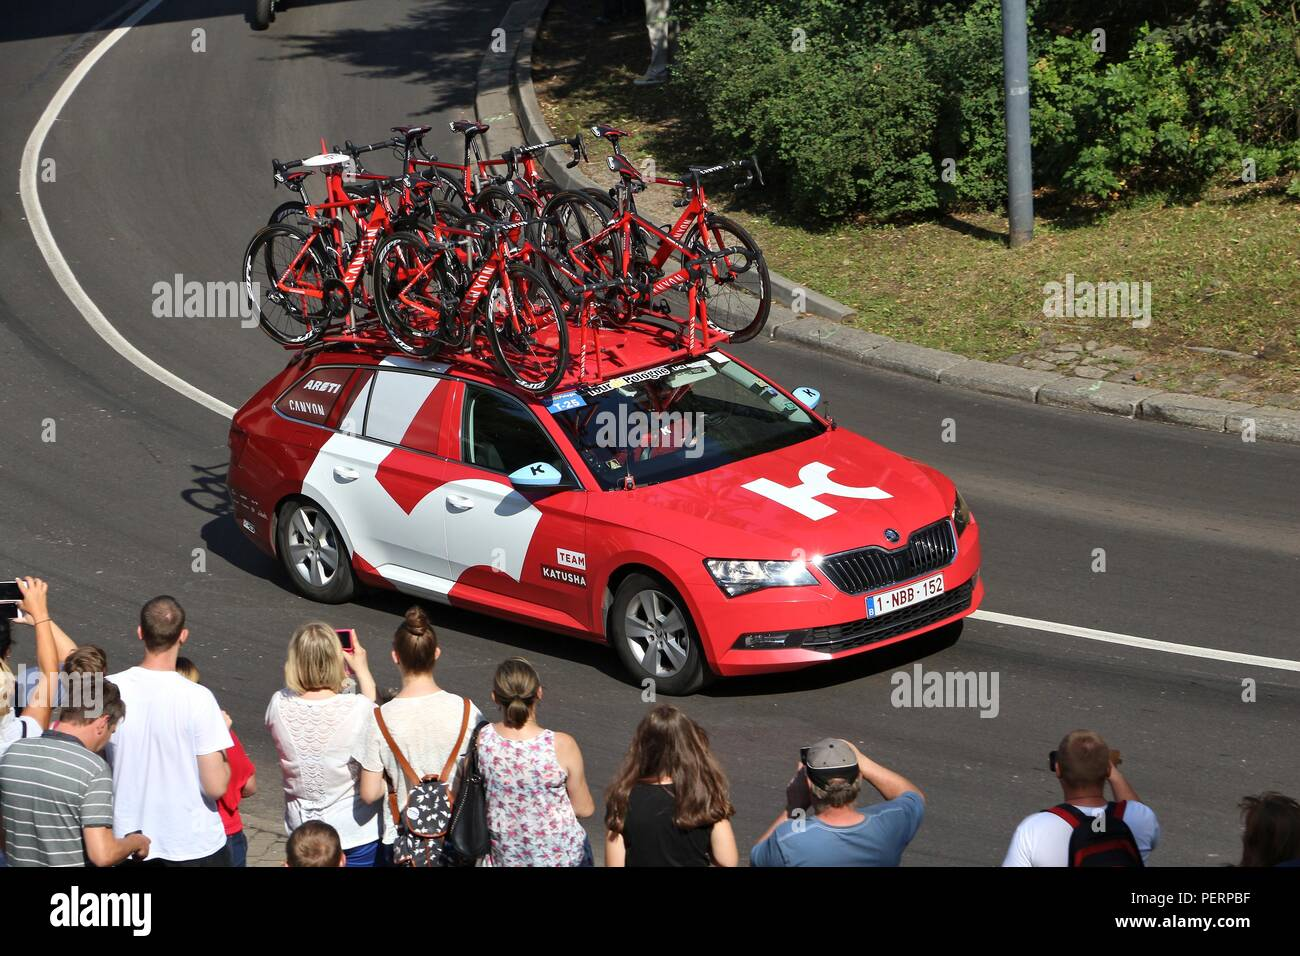 Bytom Poland July 13 2016 Team Vehicle Drives In Tour De